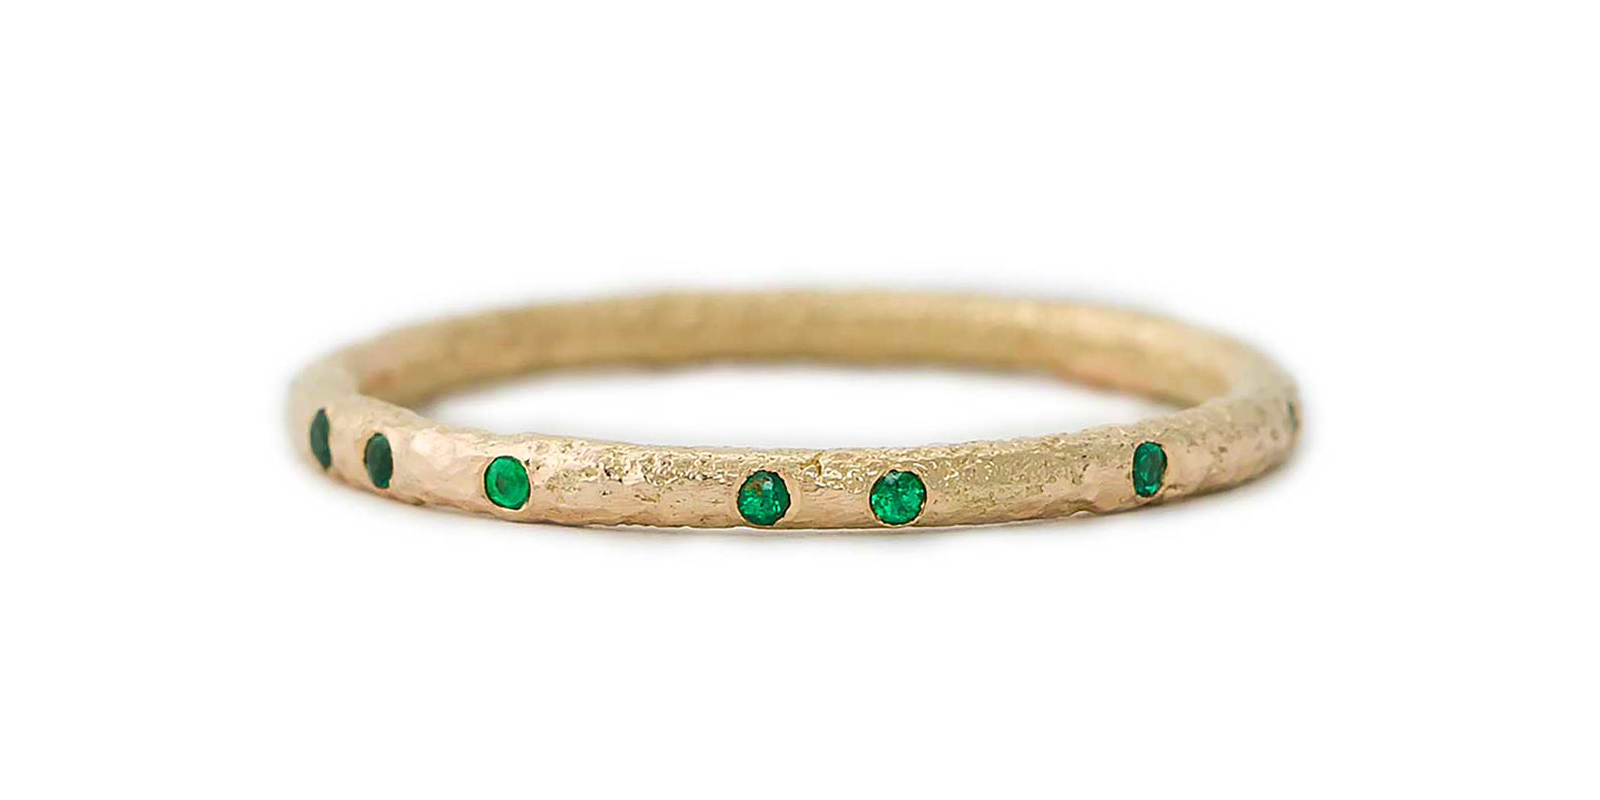 Gem Scattered Eternity Ring – Emerald, 18ct Yellow Gold